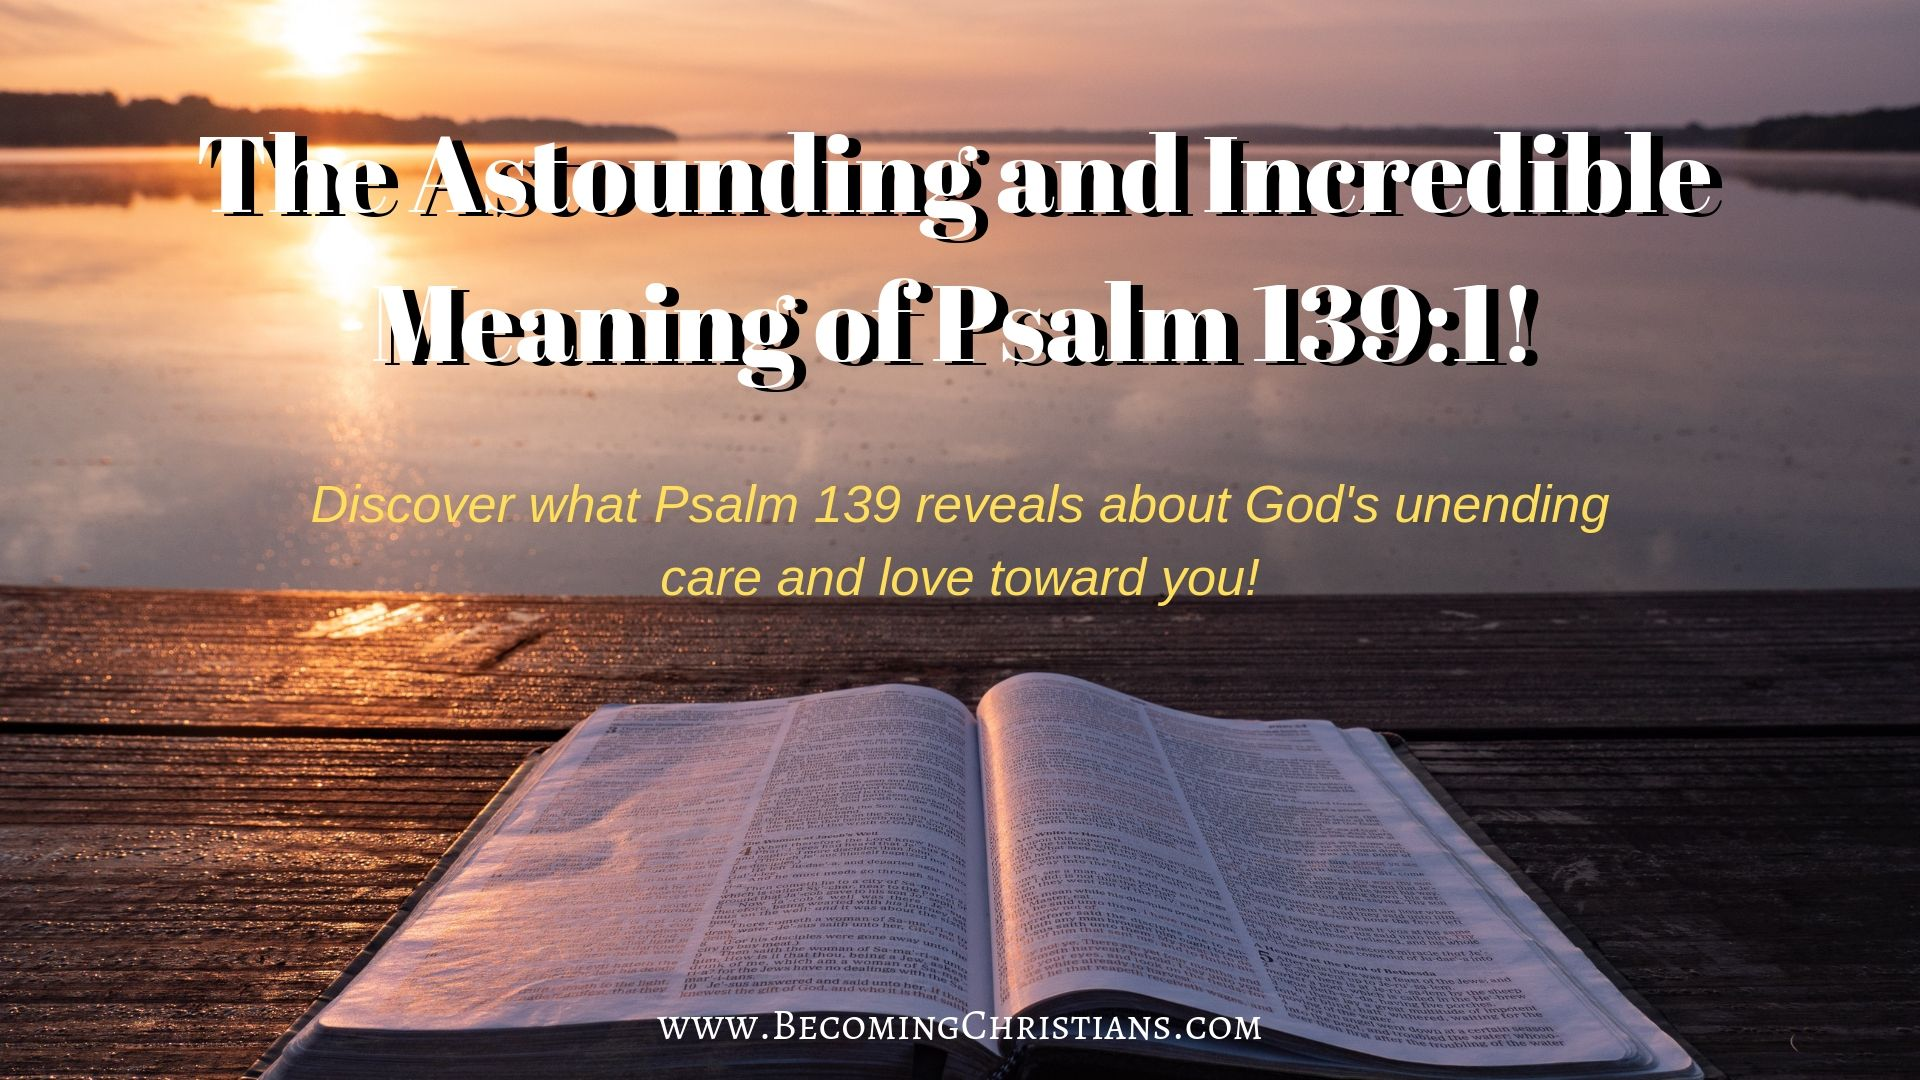 The Astounding and Incredible Meaning of Psalm 139:1!